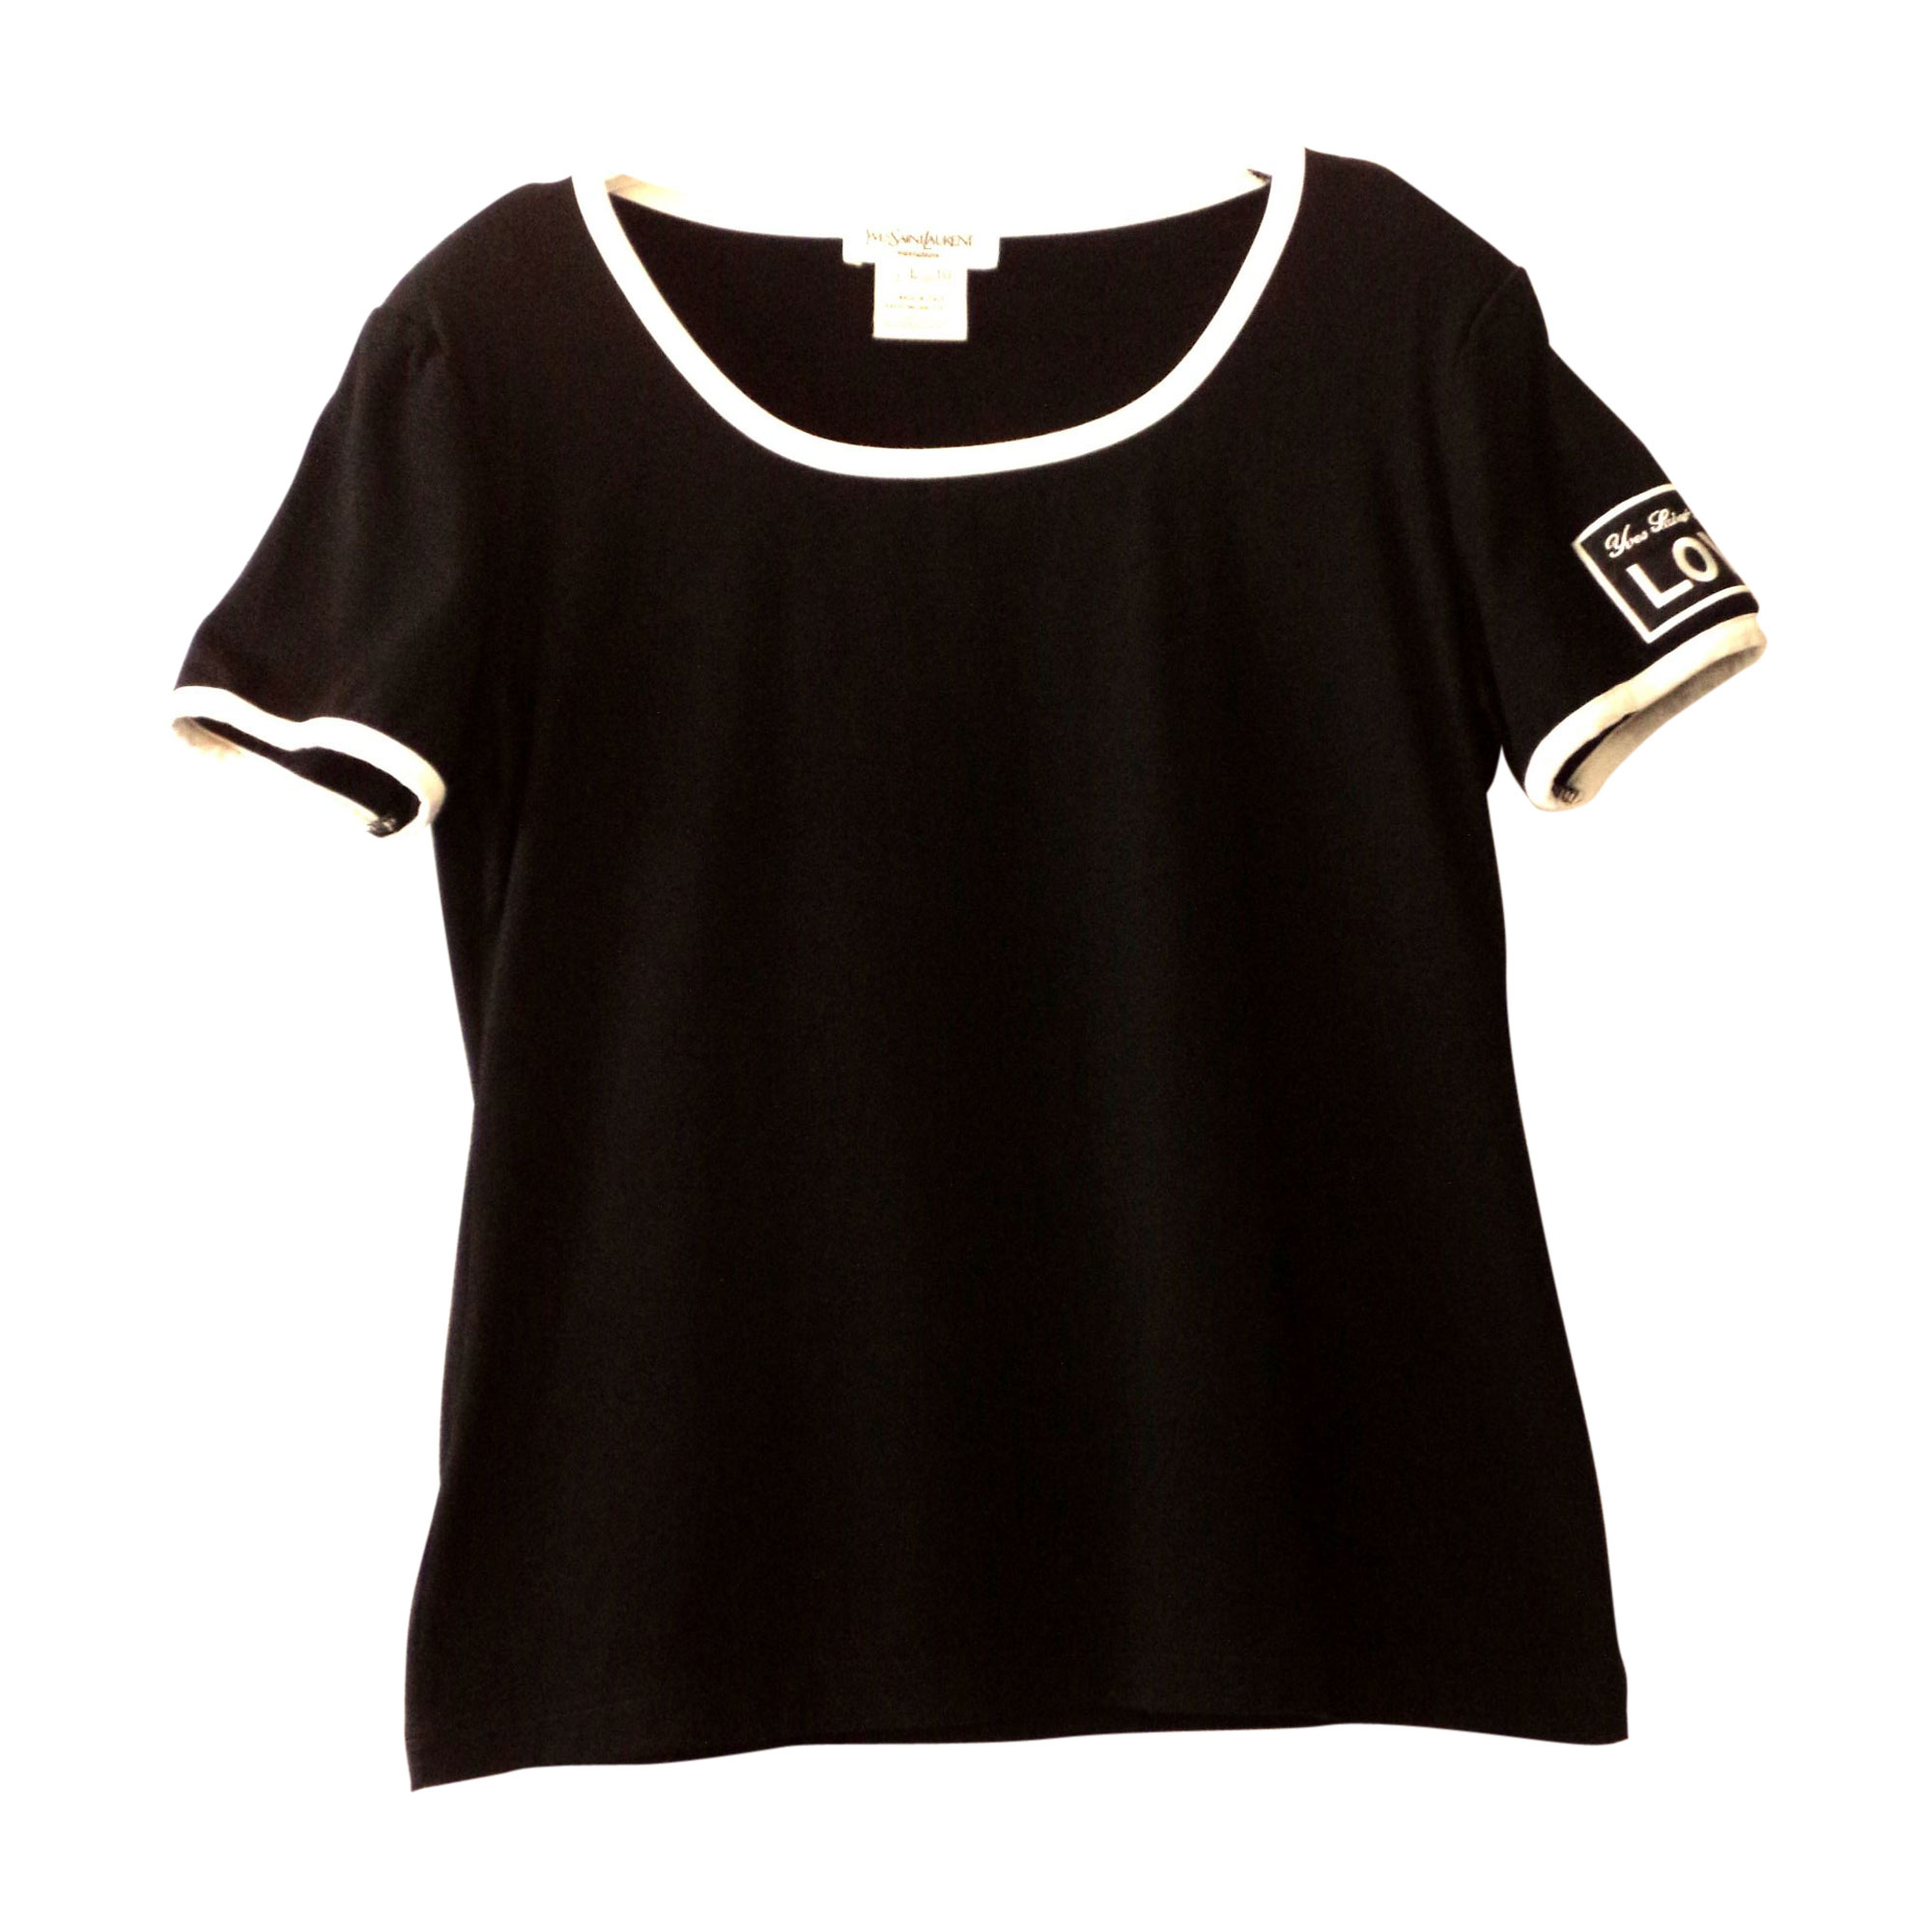 Top, tee-shirt YVES SAINT LAURENT Noir